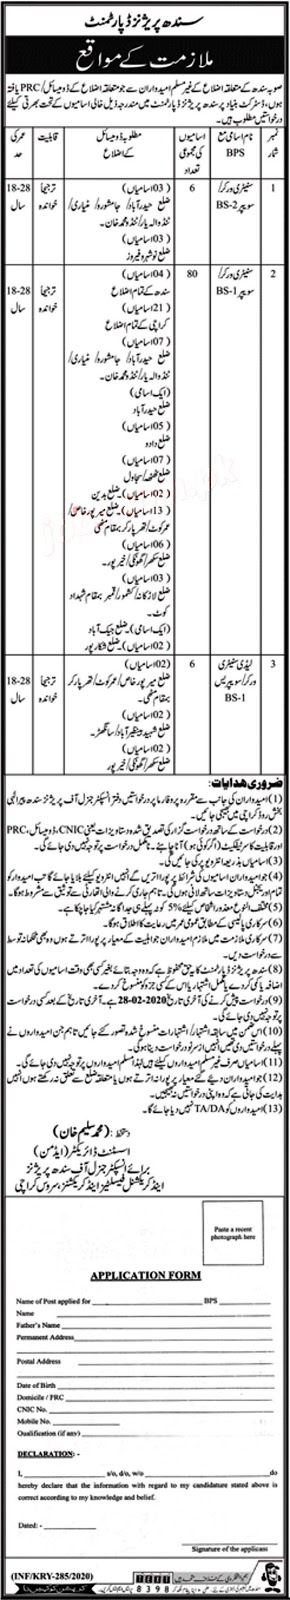 Prisons Department Jobs 2020 for Under Matric Police Jobs